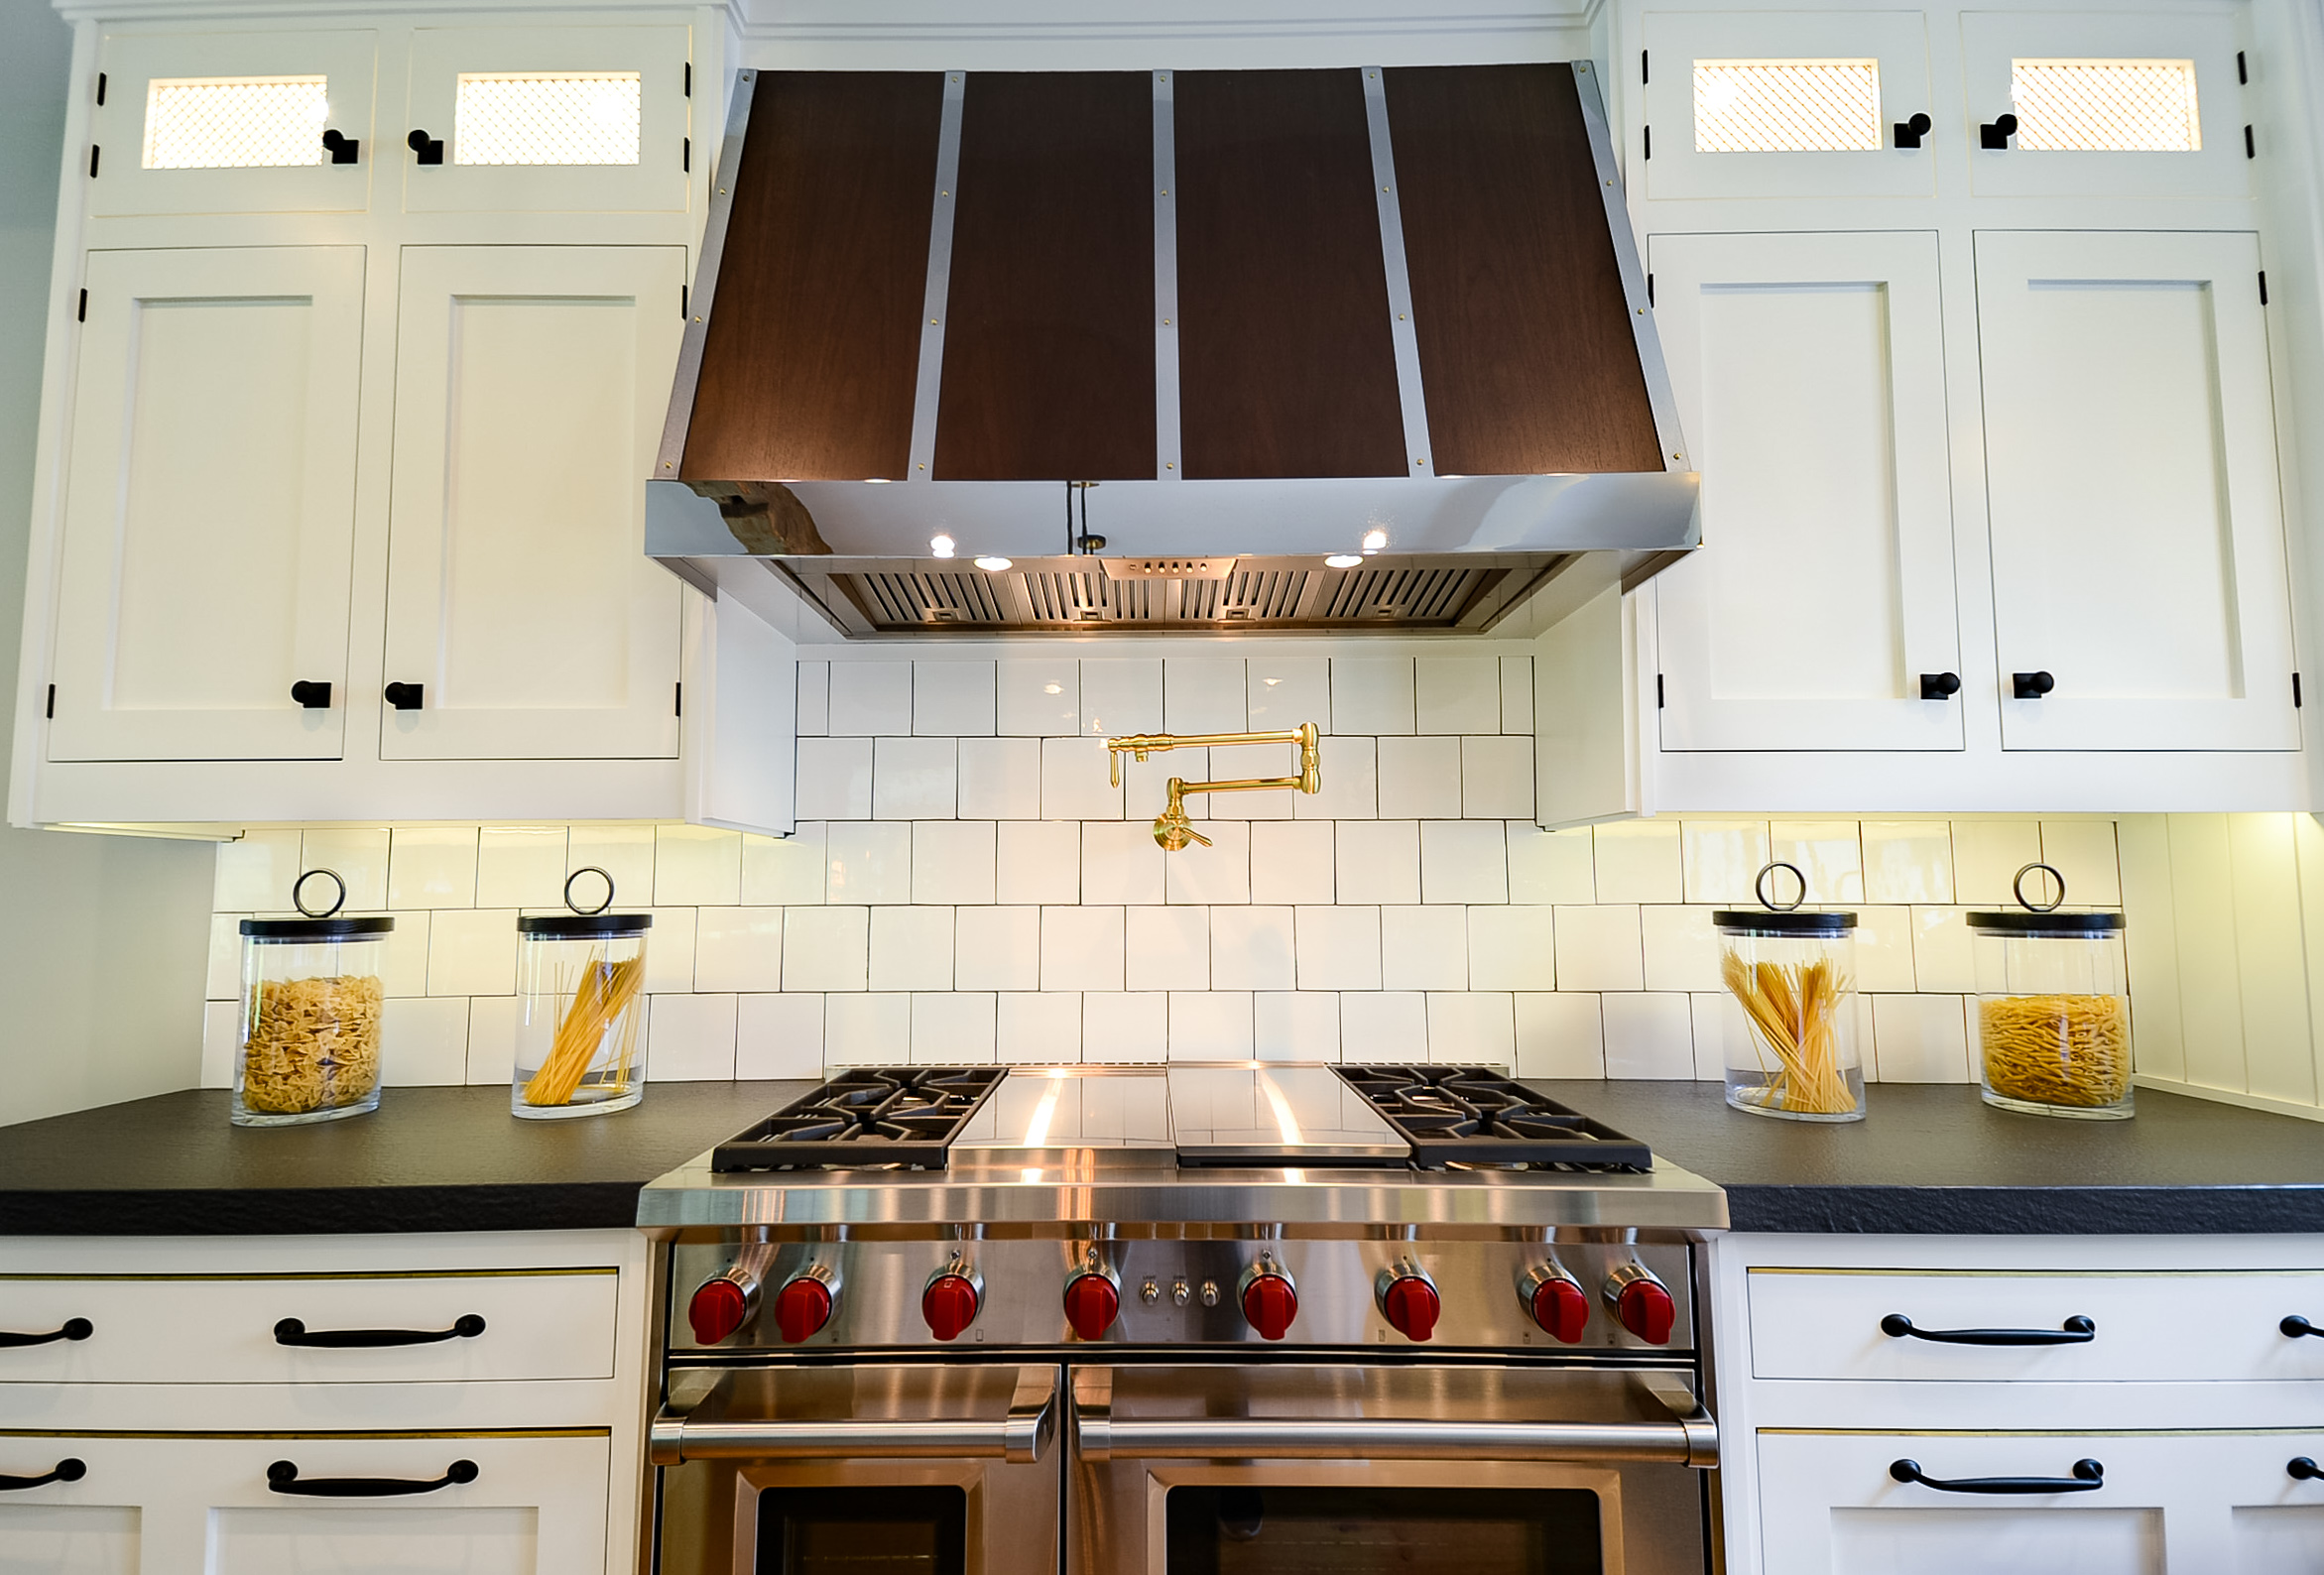 Cold Spring Harbor White Kitchen with a Wood Hood